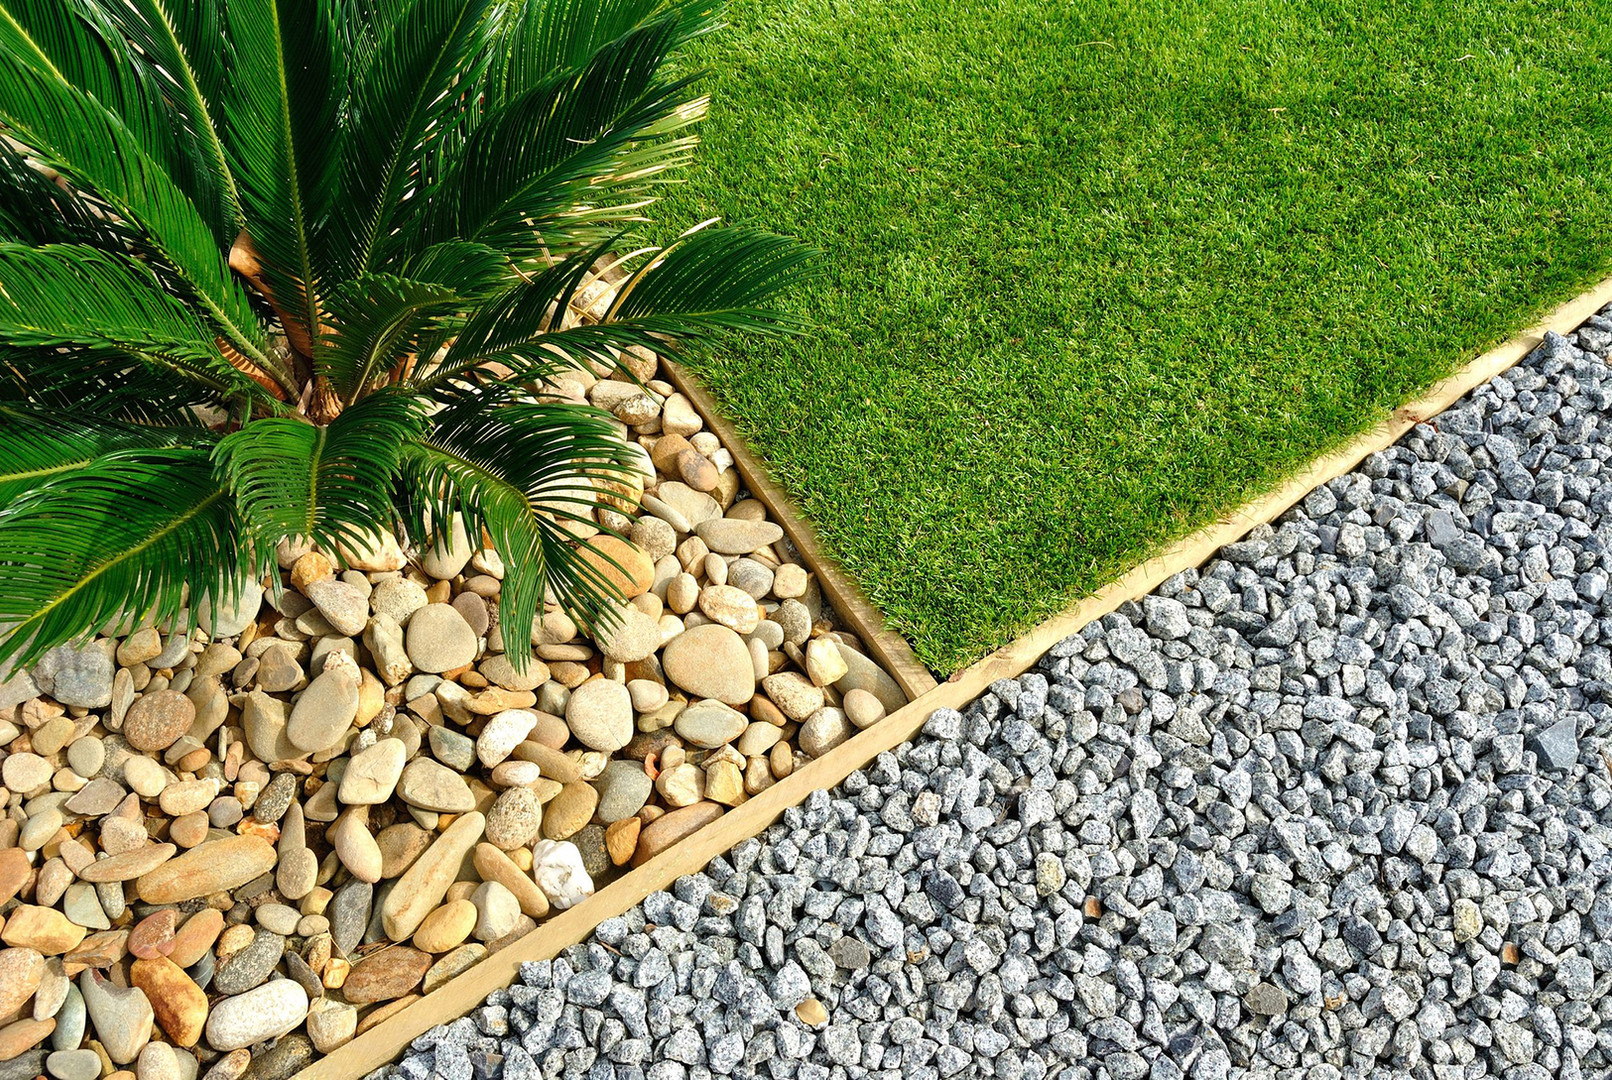 Pebbles and Stones for Landscaping